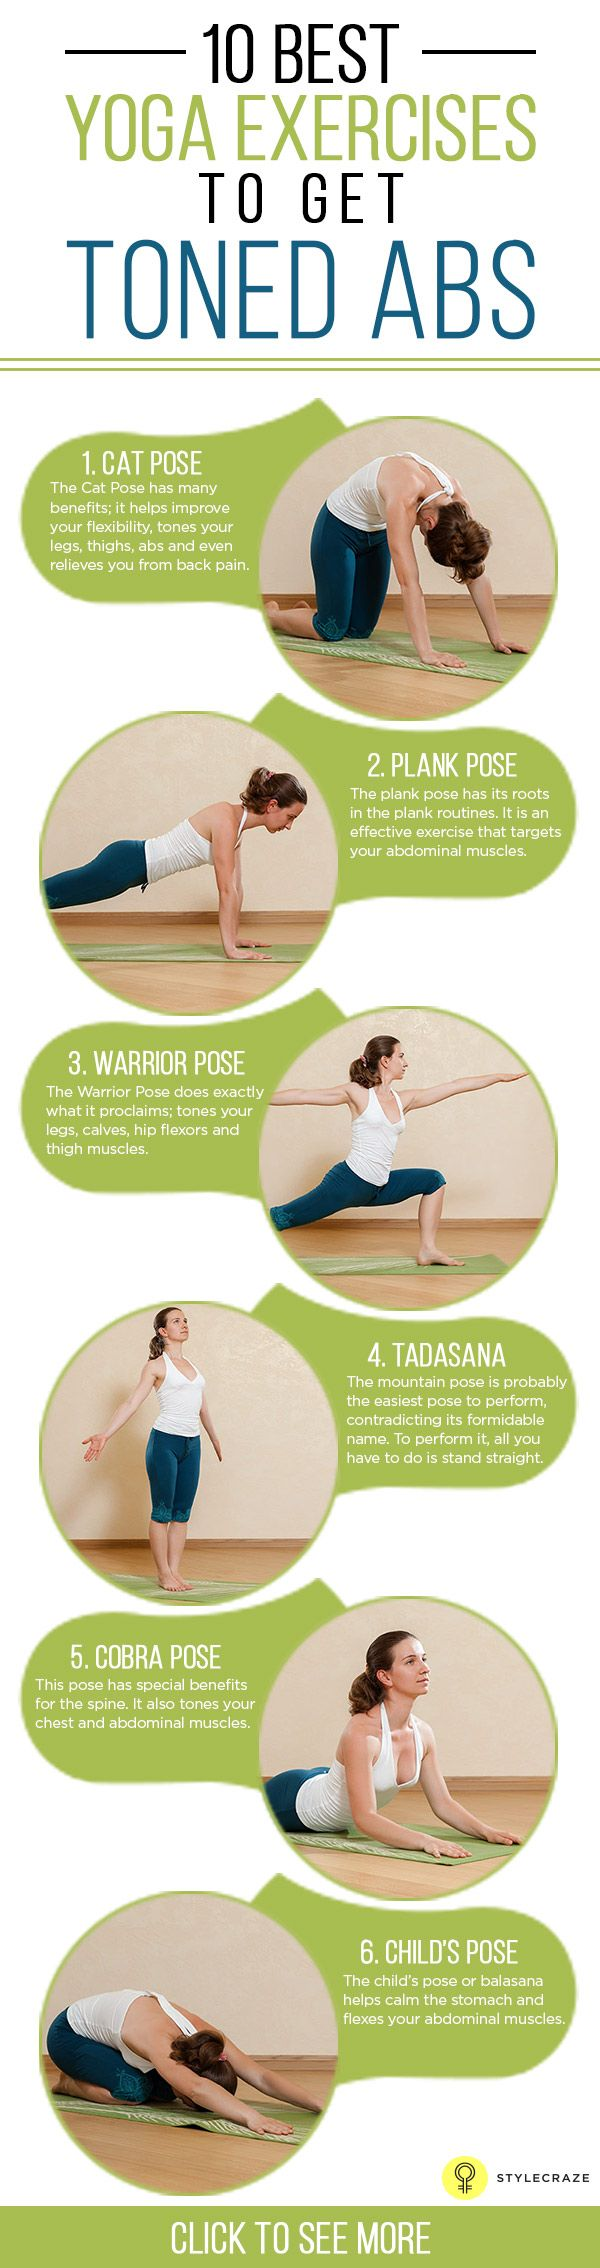 10 Effective Yoga Exercises To Get Toned Abs